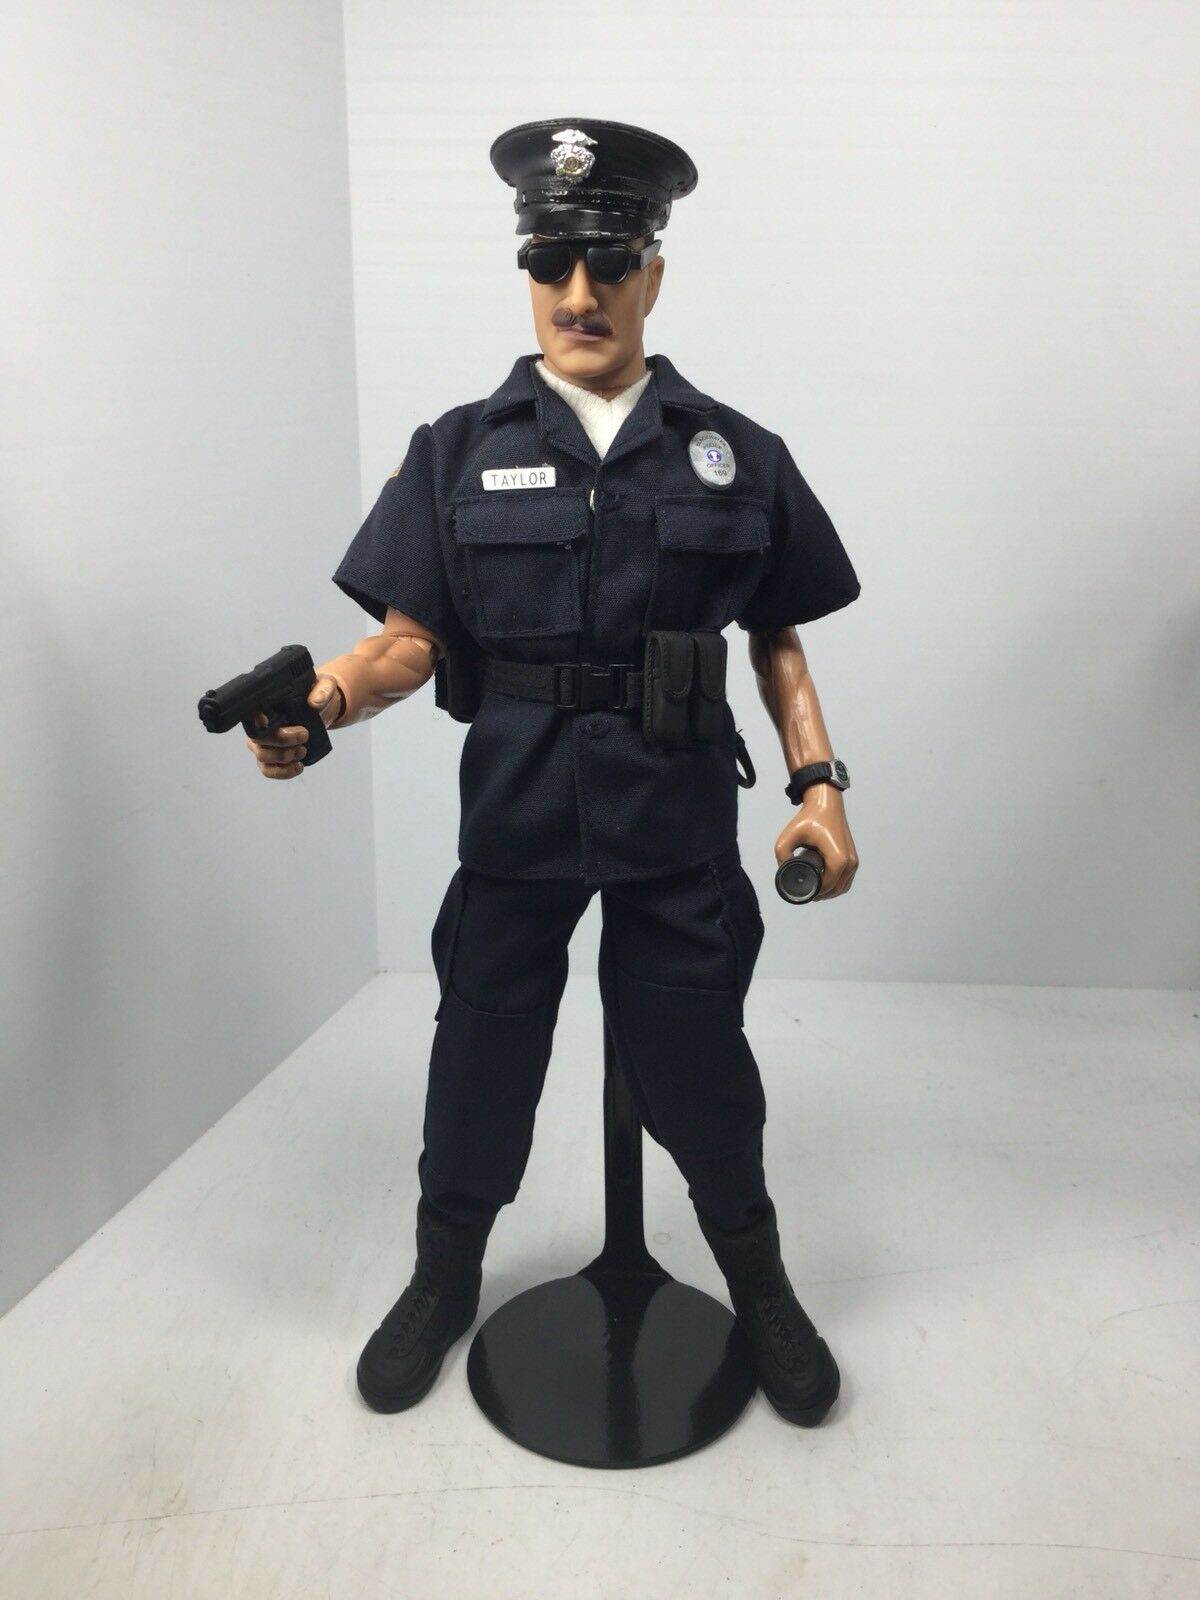 1/6 POLICE OFFICER 911 PISTOL STAND FULL GEAR POLICEMAN HASBRO BBI DID DRAGON 21